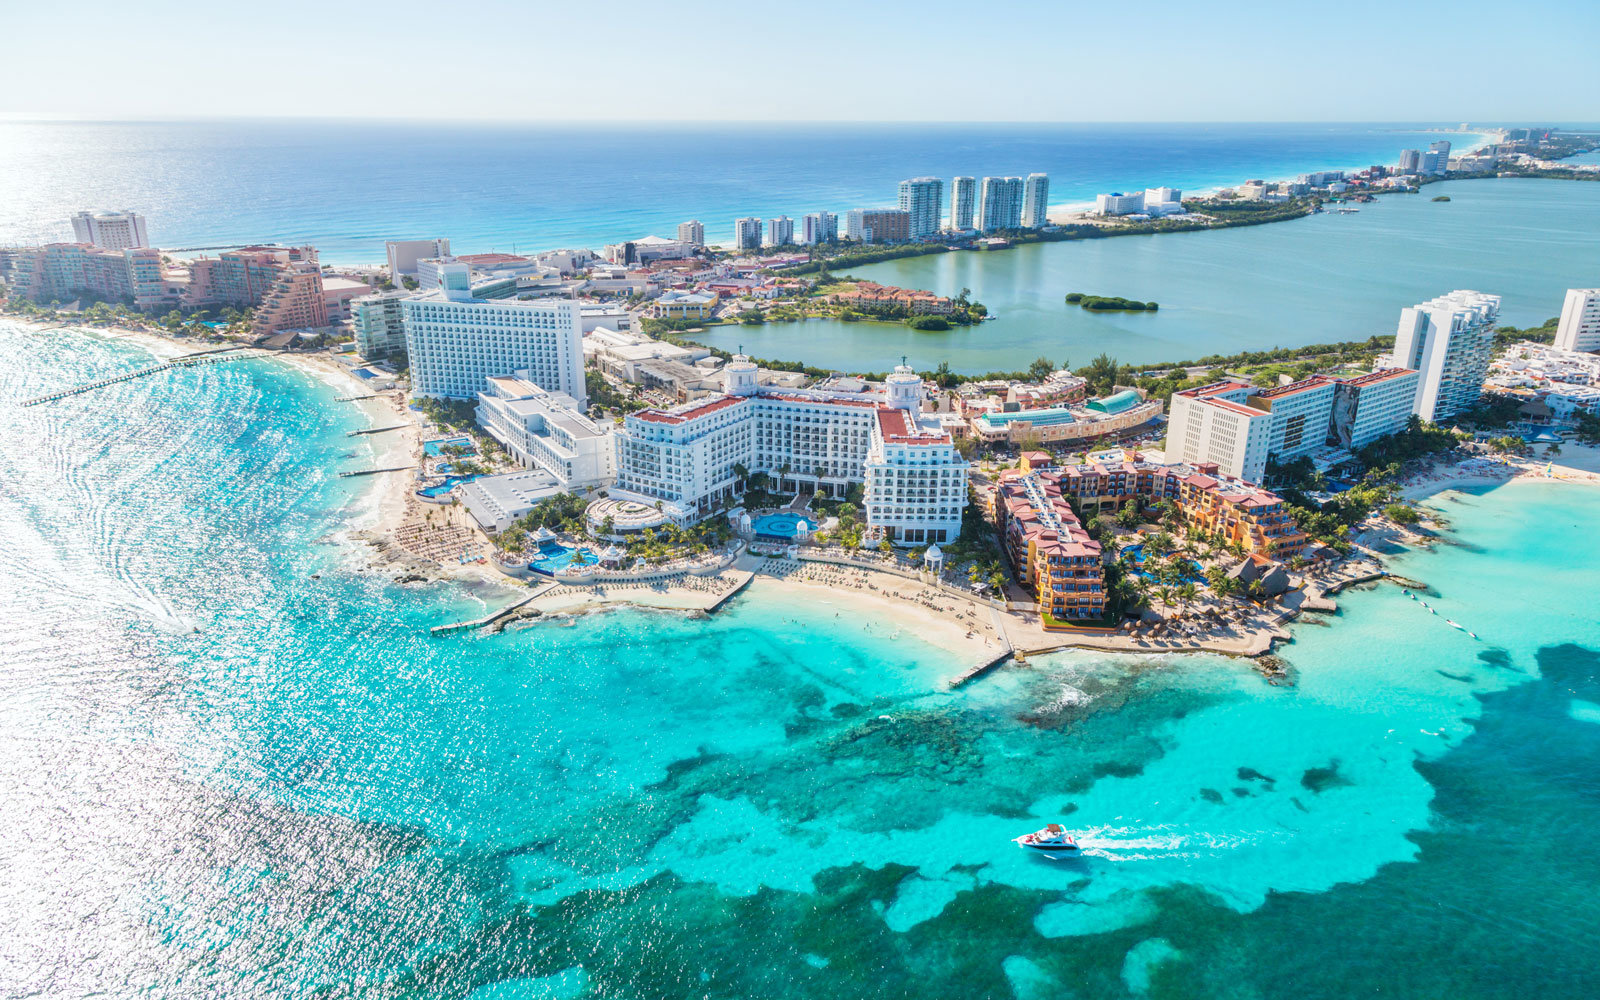 Cancun Travel Warning Issued By U.S. State Department